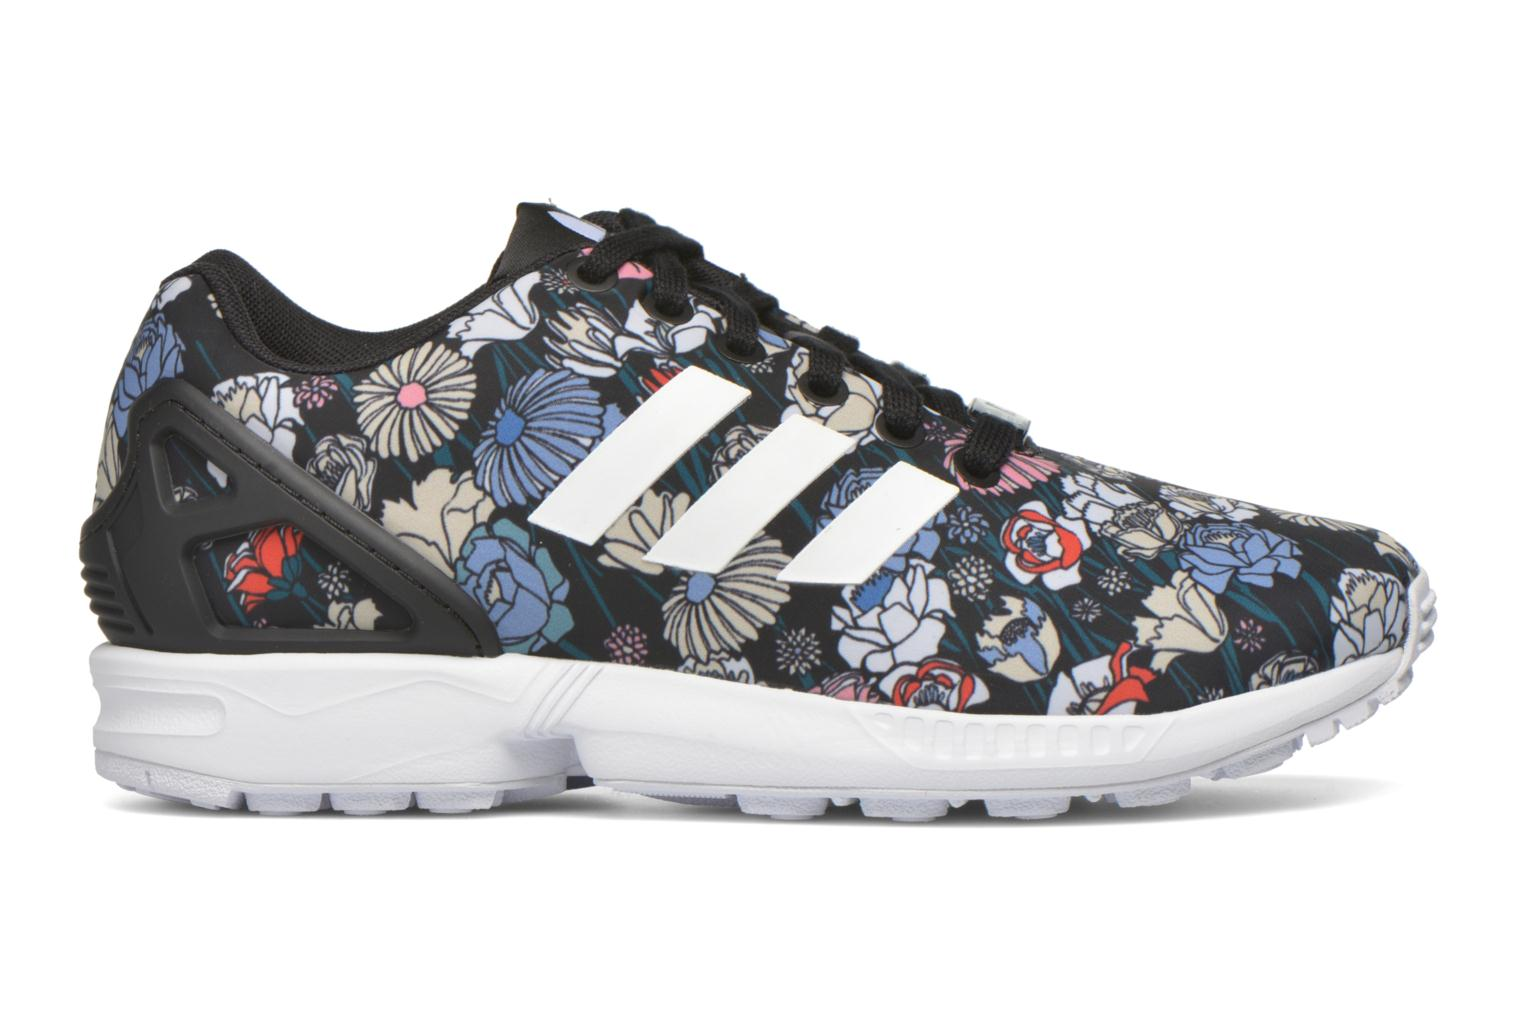 Baskets Adidas Originals Zx Flux W Multicolore vue derrière